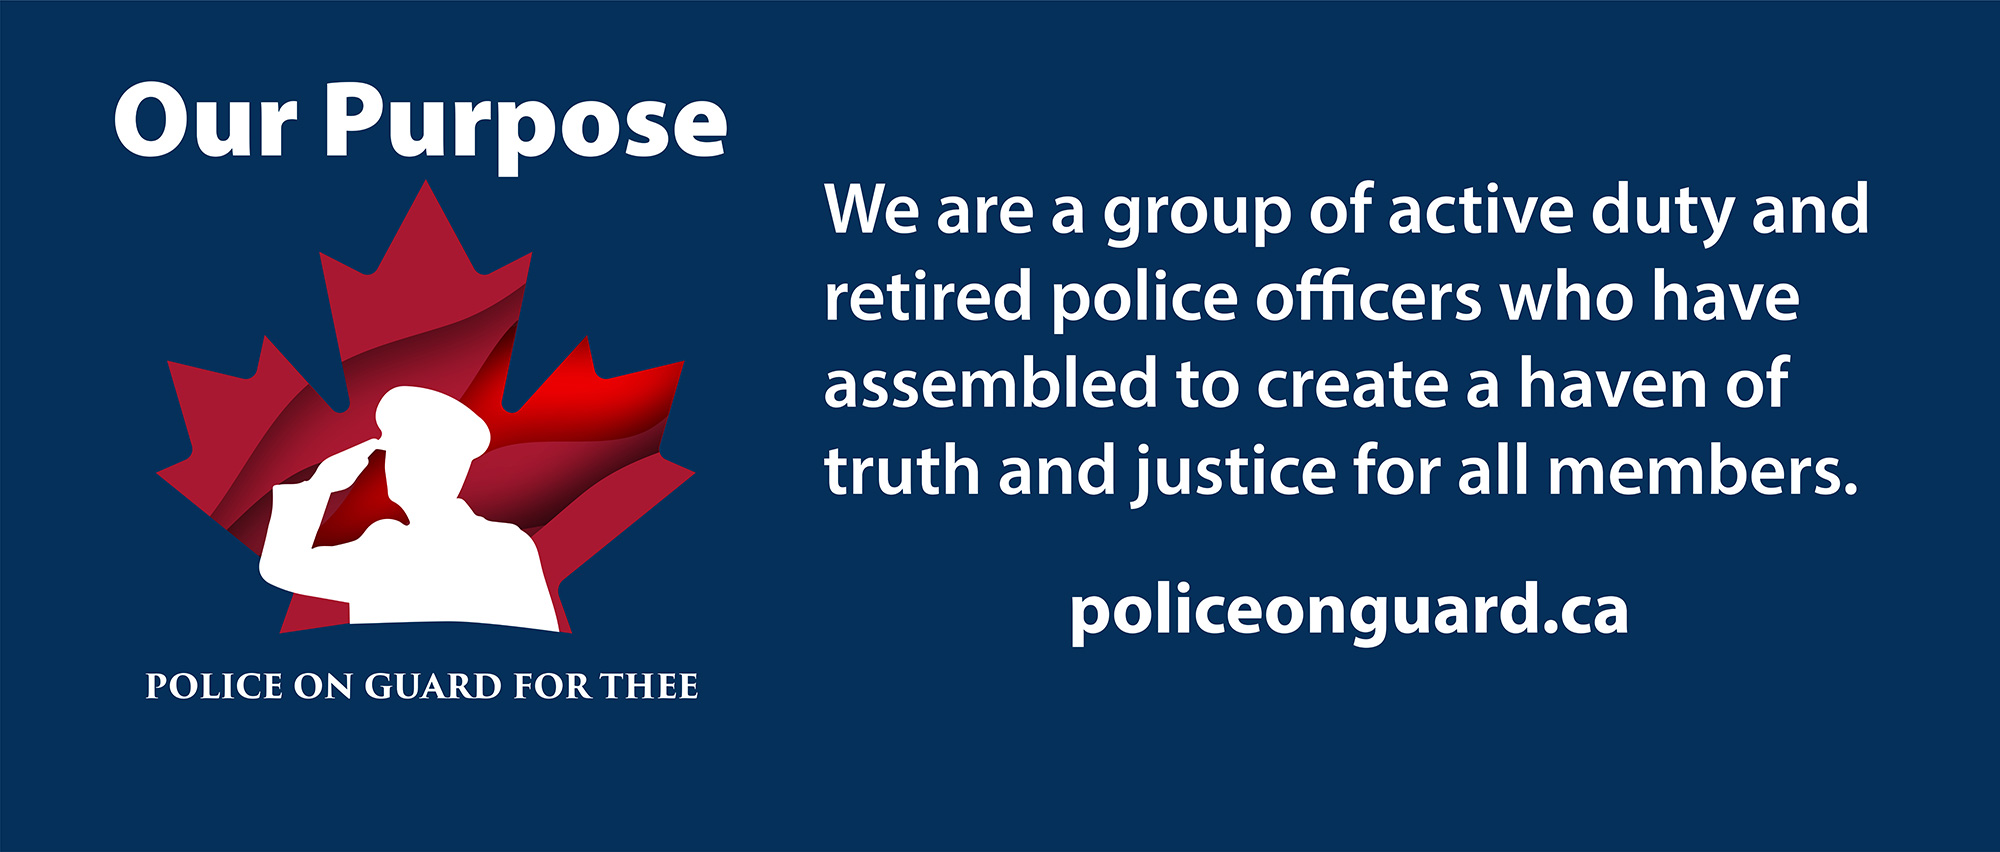 Police on Guard for Thee - Sign the petition